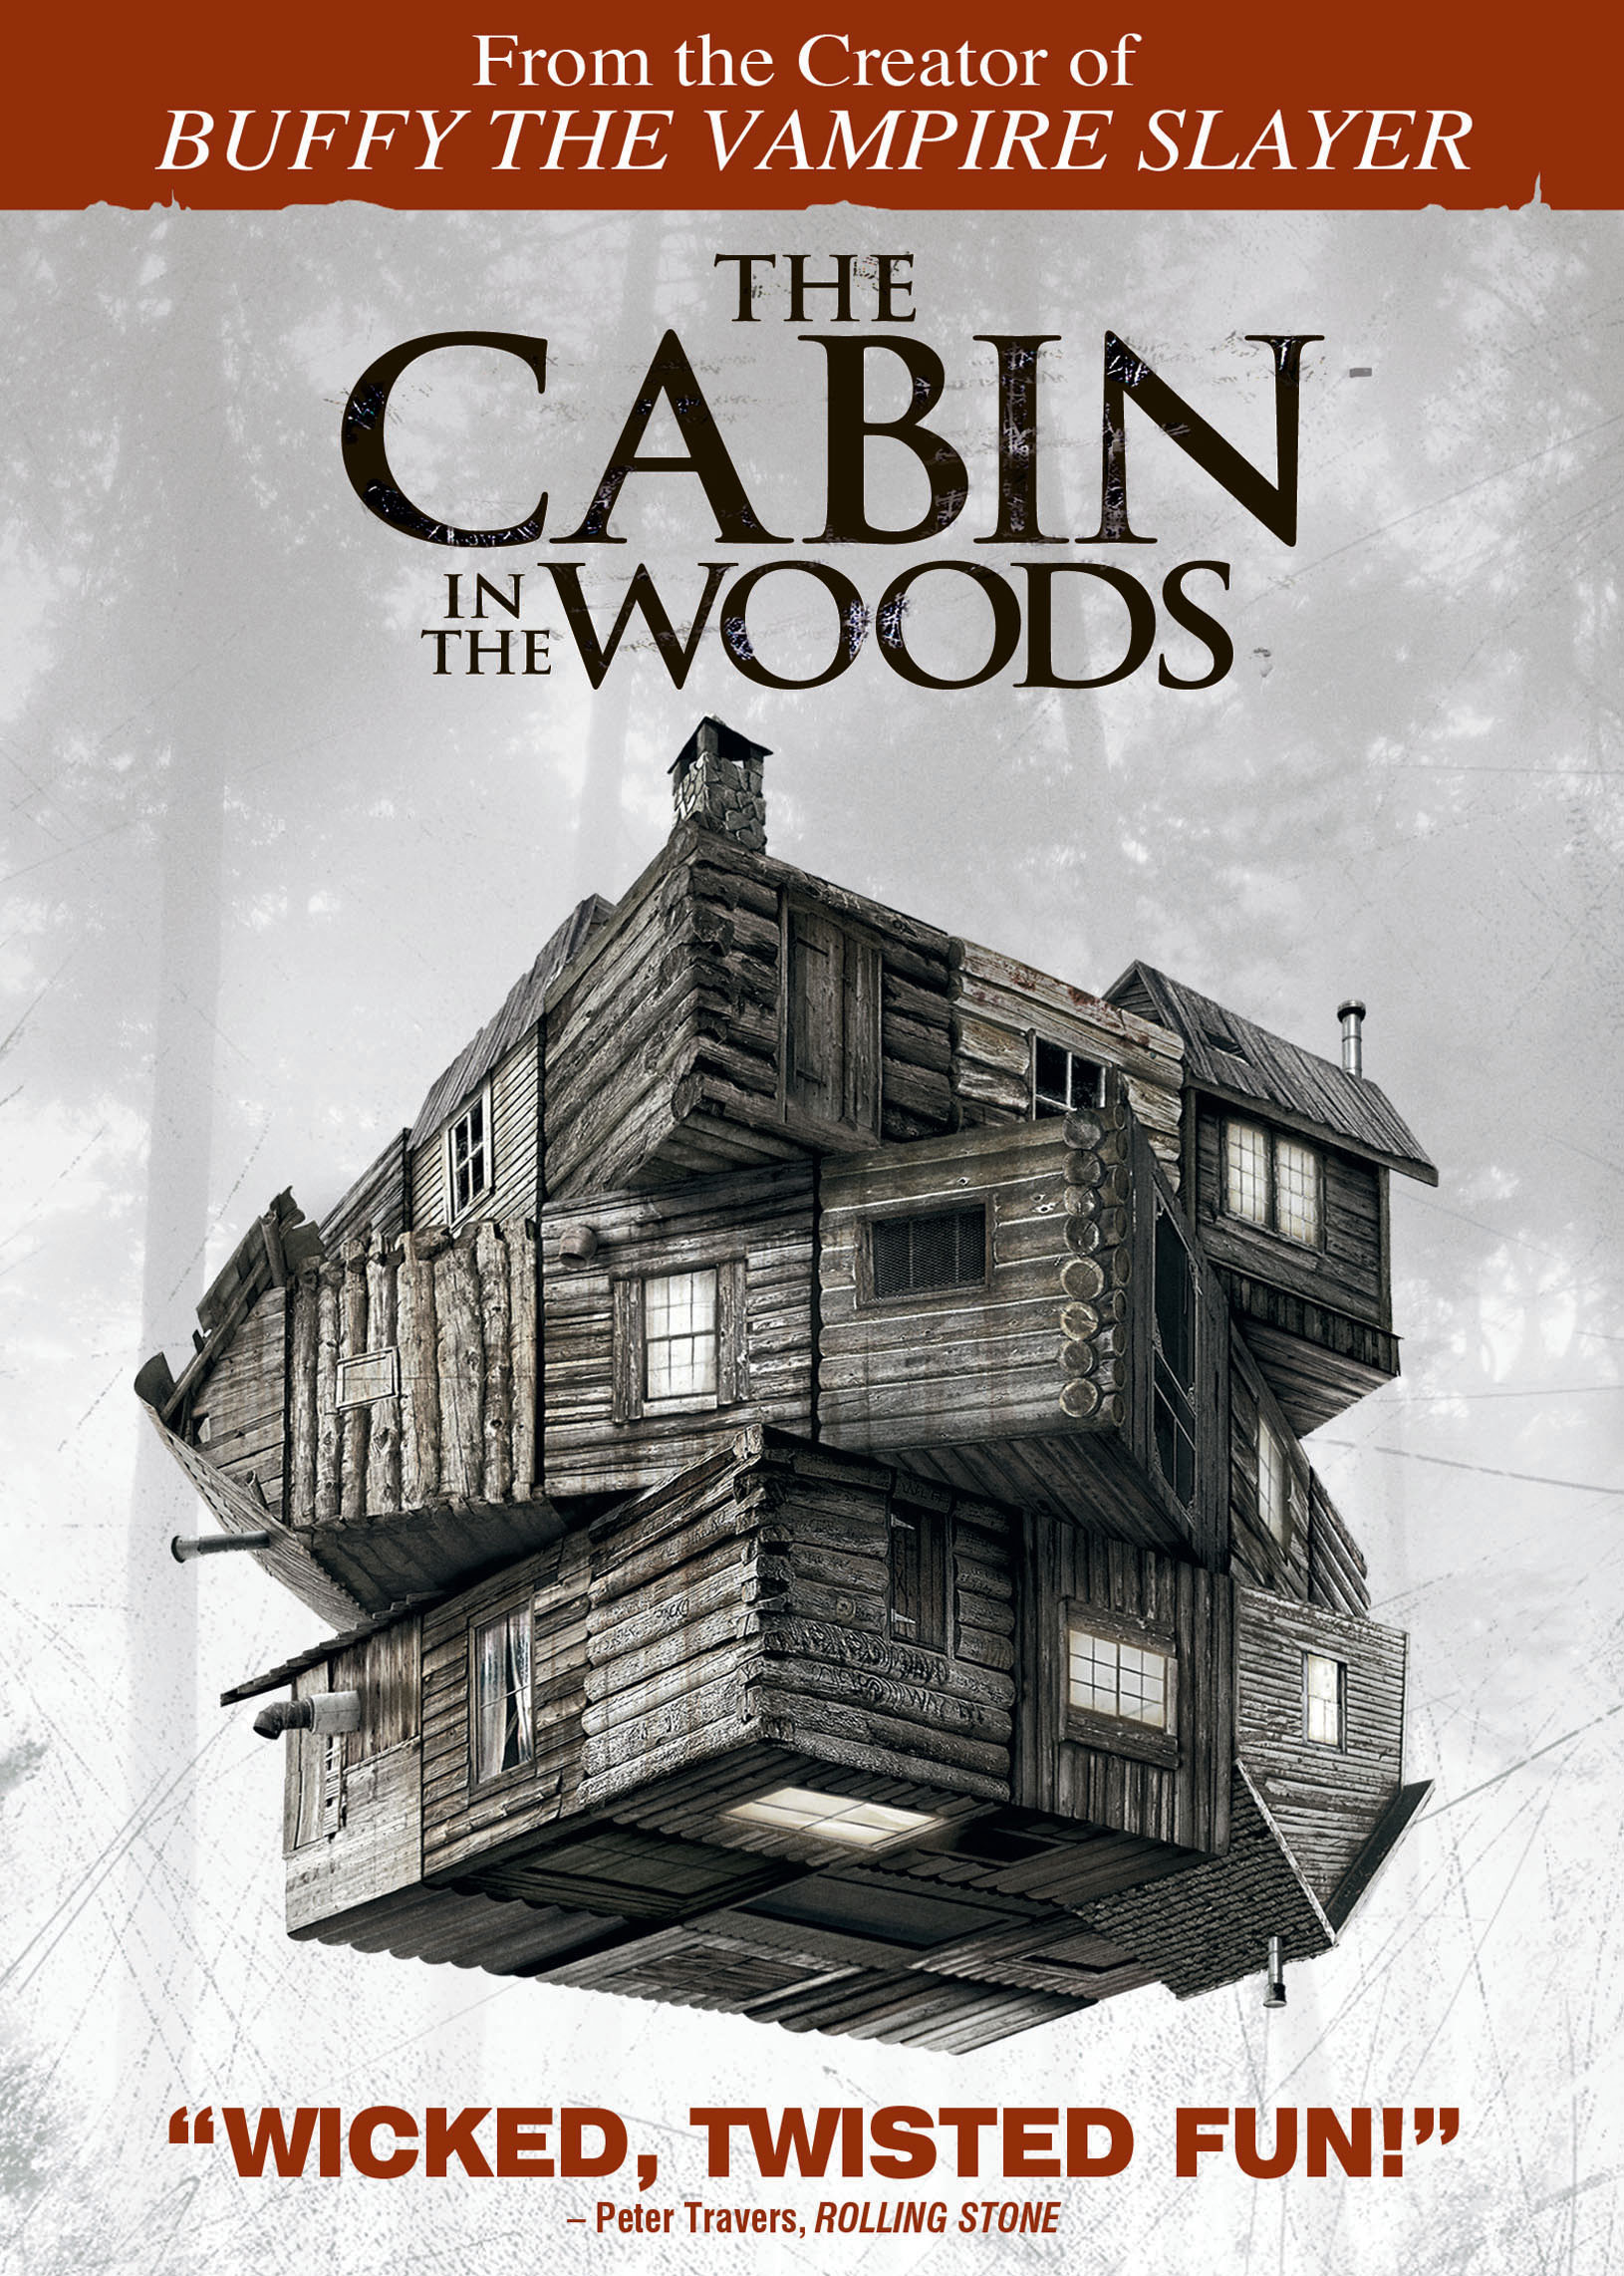 Cabin in the Woods - Win a Bundle of Digital Ultraviolet Horror from Lionsgate!